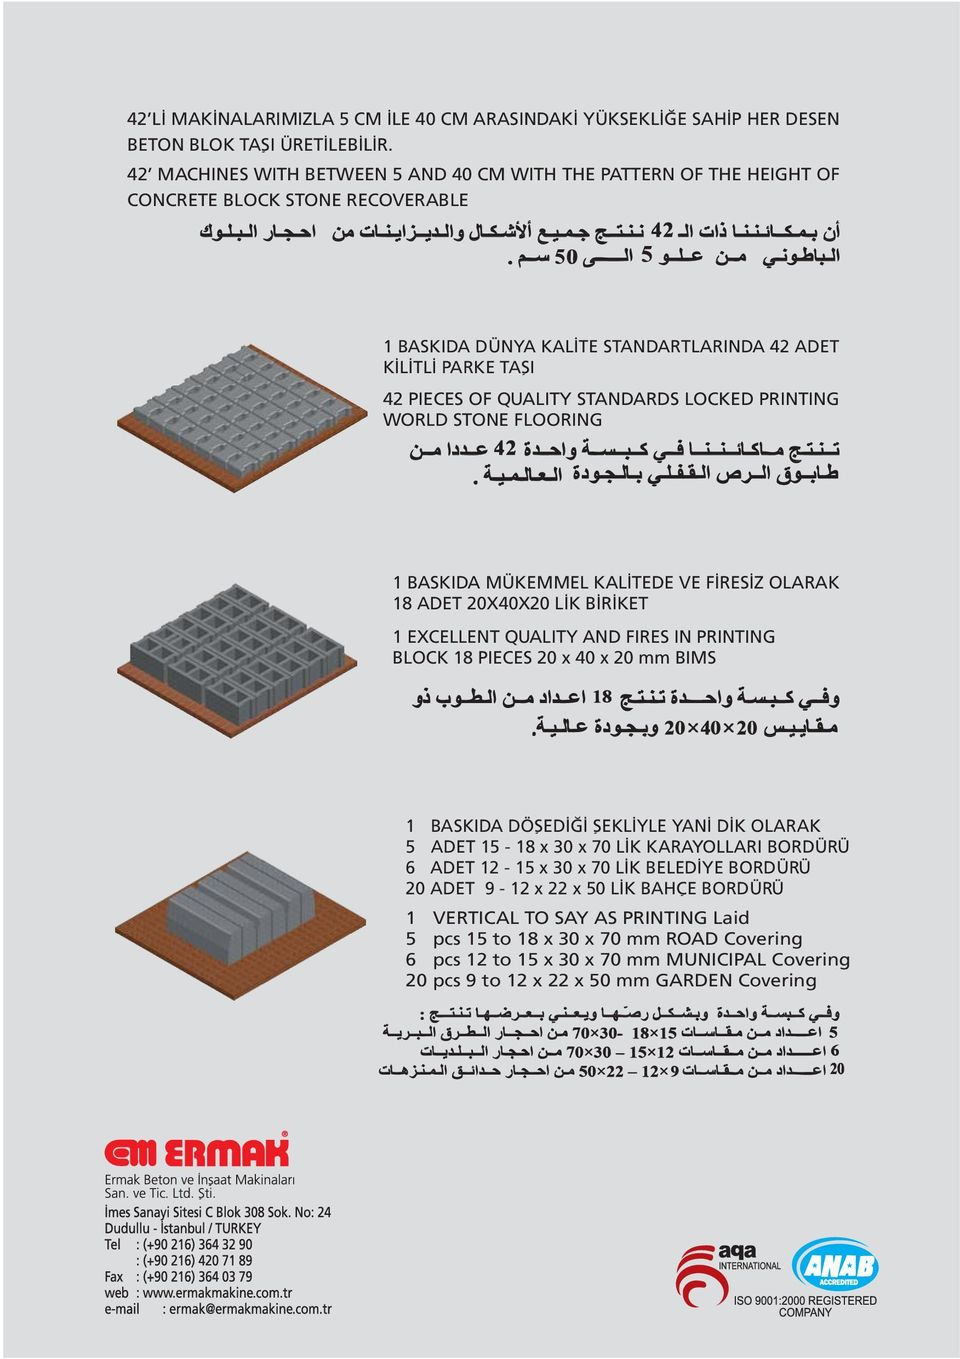 STANDARDS LOCKED PRINTING WORLD STONE FLOORING 1 BASKIDA MÜKEMMEL KALÝTEDE VE FÝRESÝZ OLARAK 18 ADET 20X40X20 LÝK BÝRÝKET 1 EXCELLENT QUALITY AND FIRES IN PRINTING BLOCK 18 PIECES 20 x 40 x 20 mm